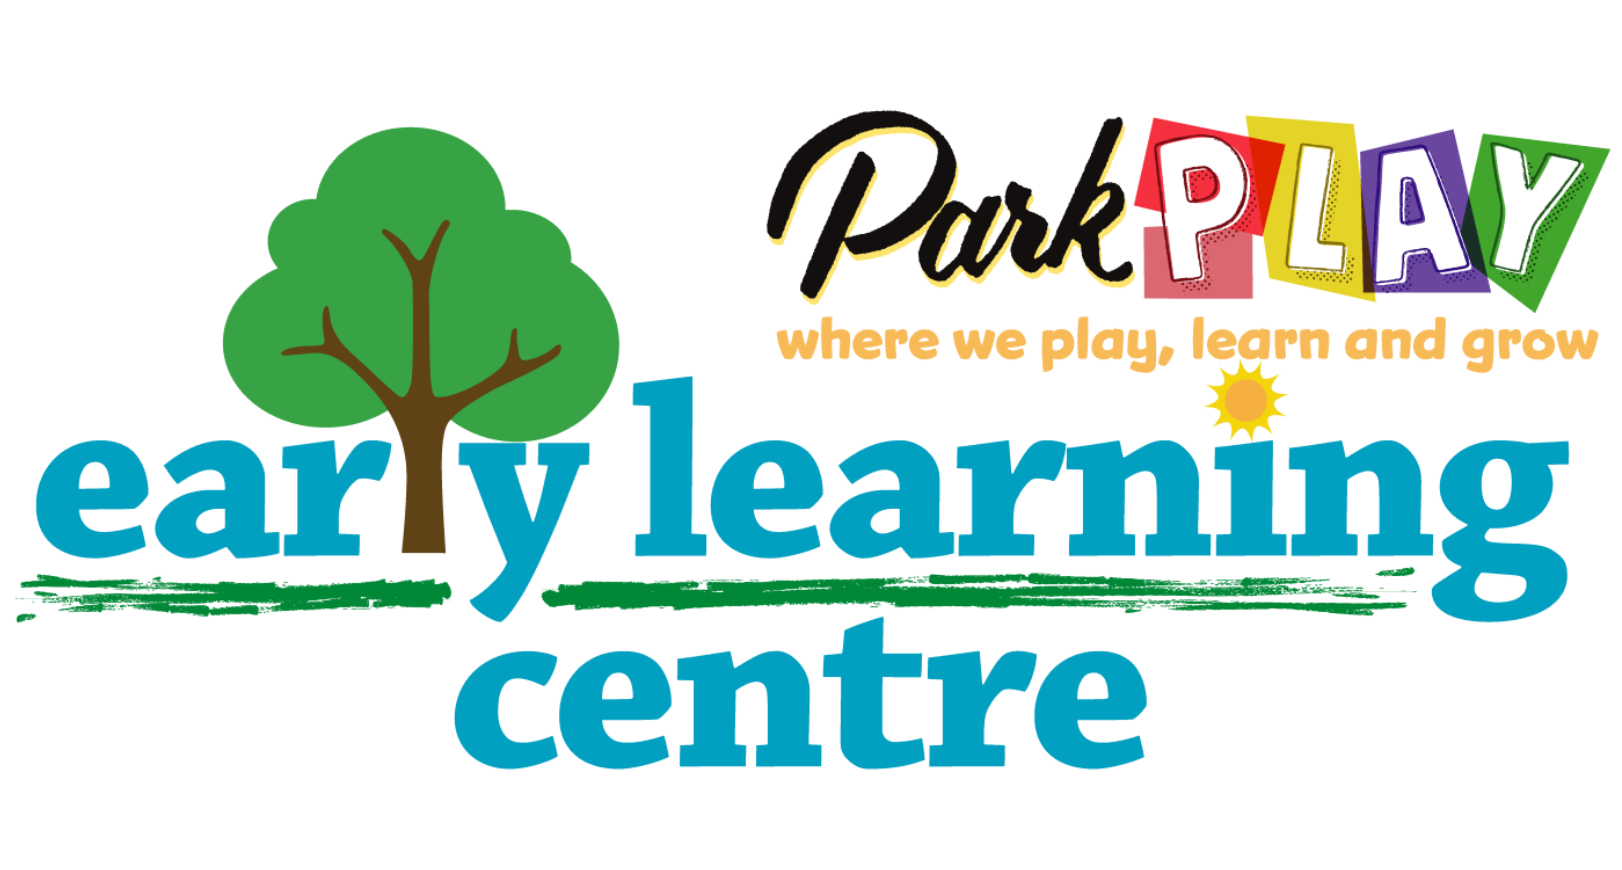 Park Play Presents Daycare Opening Soon